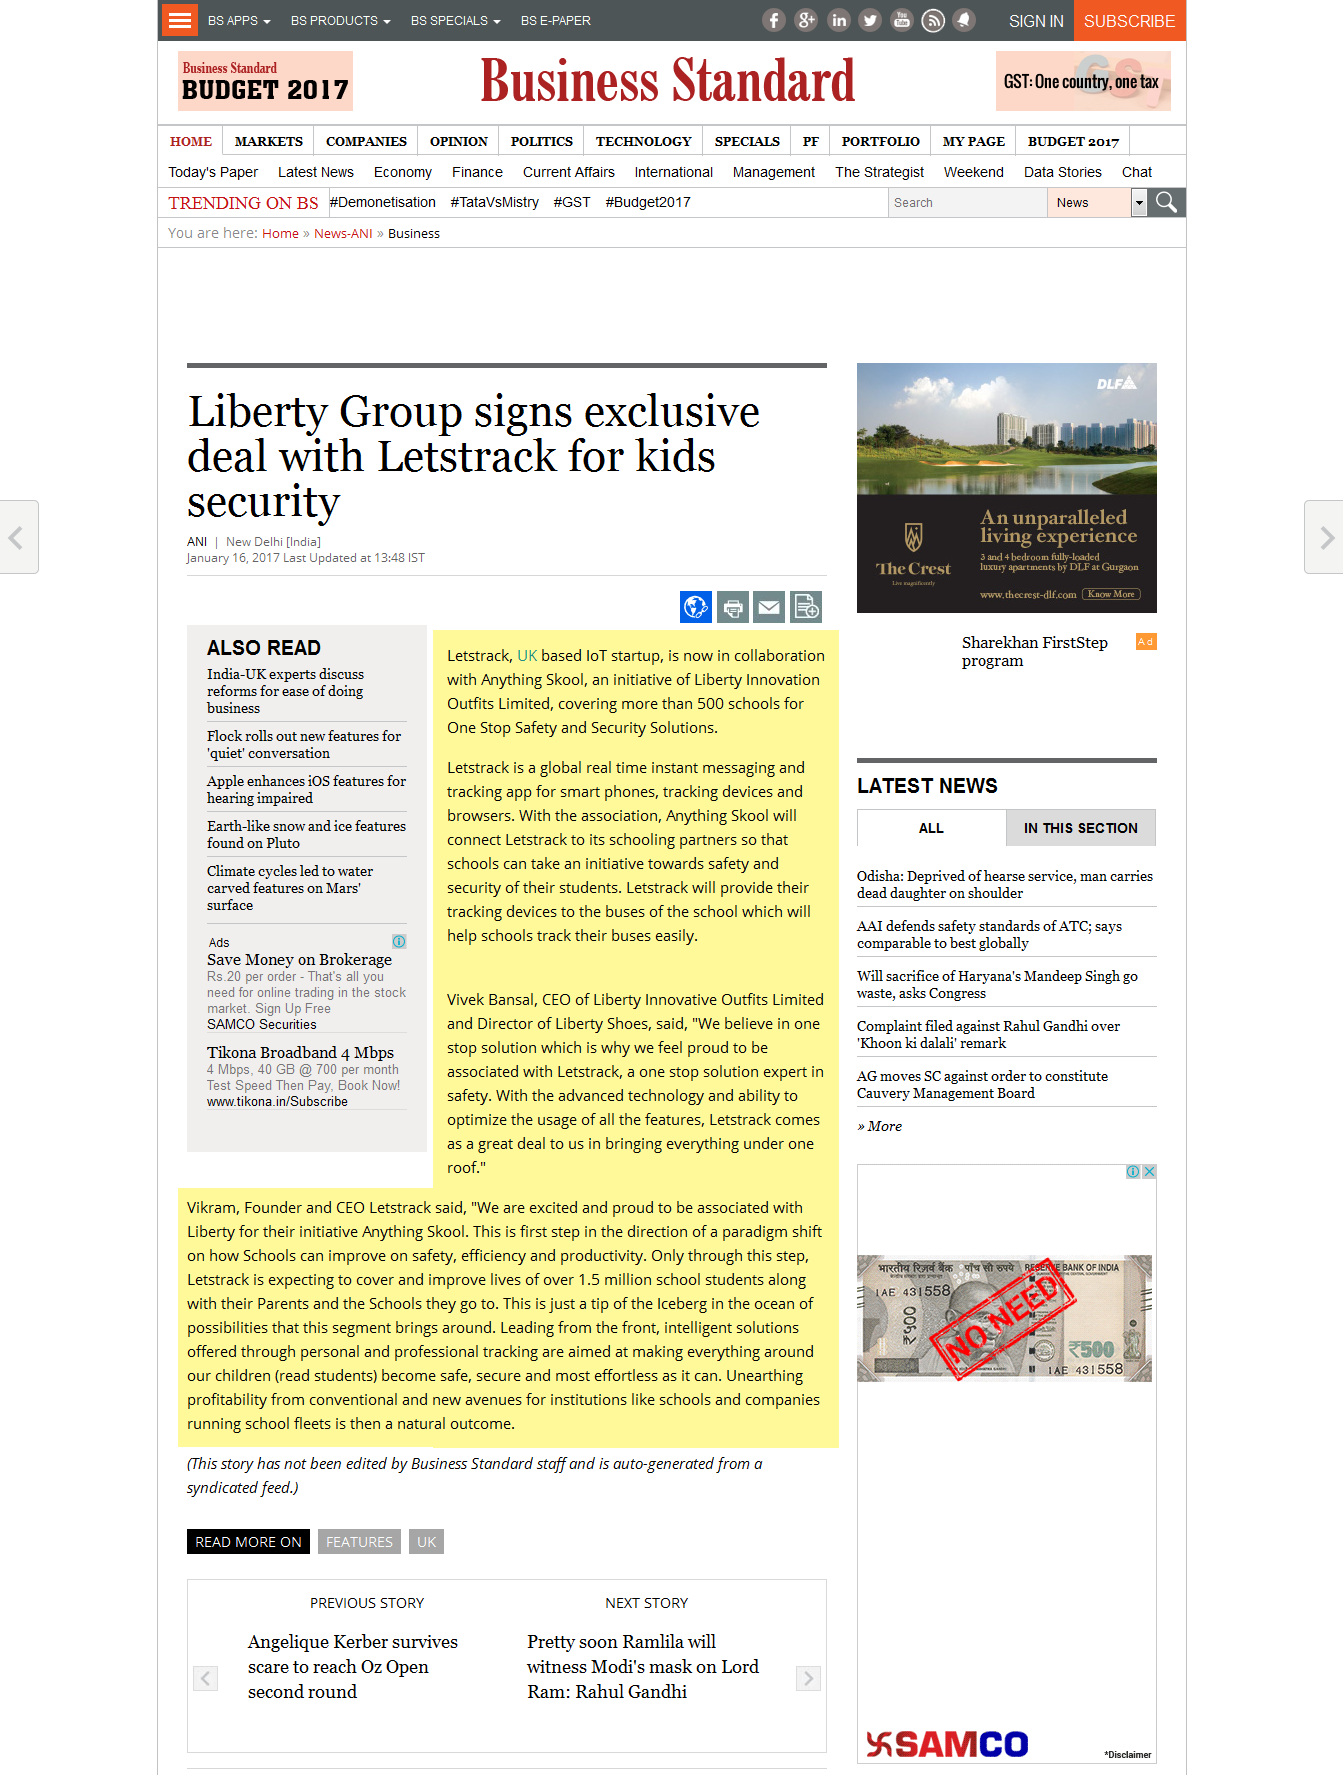 Liberty Group signs exclusive deal with Letstrack for kids security